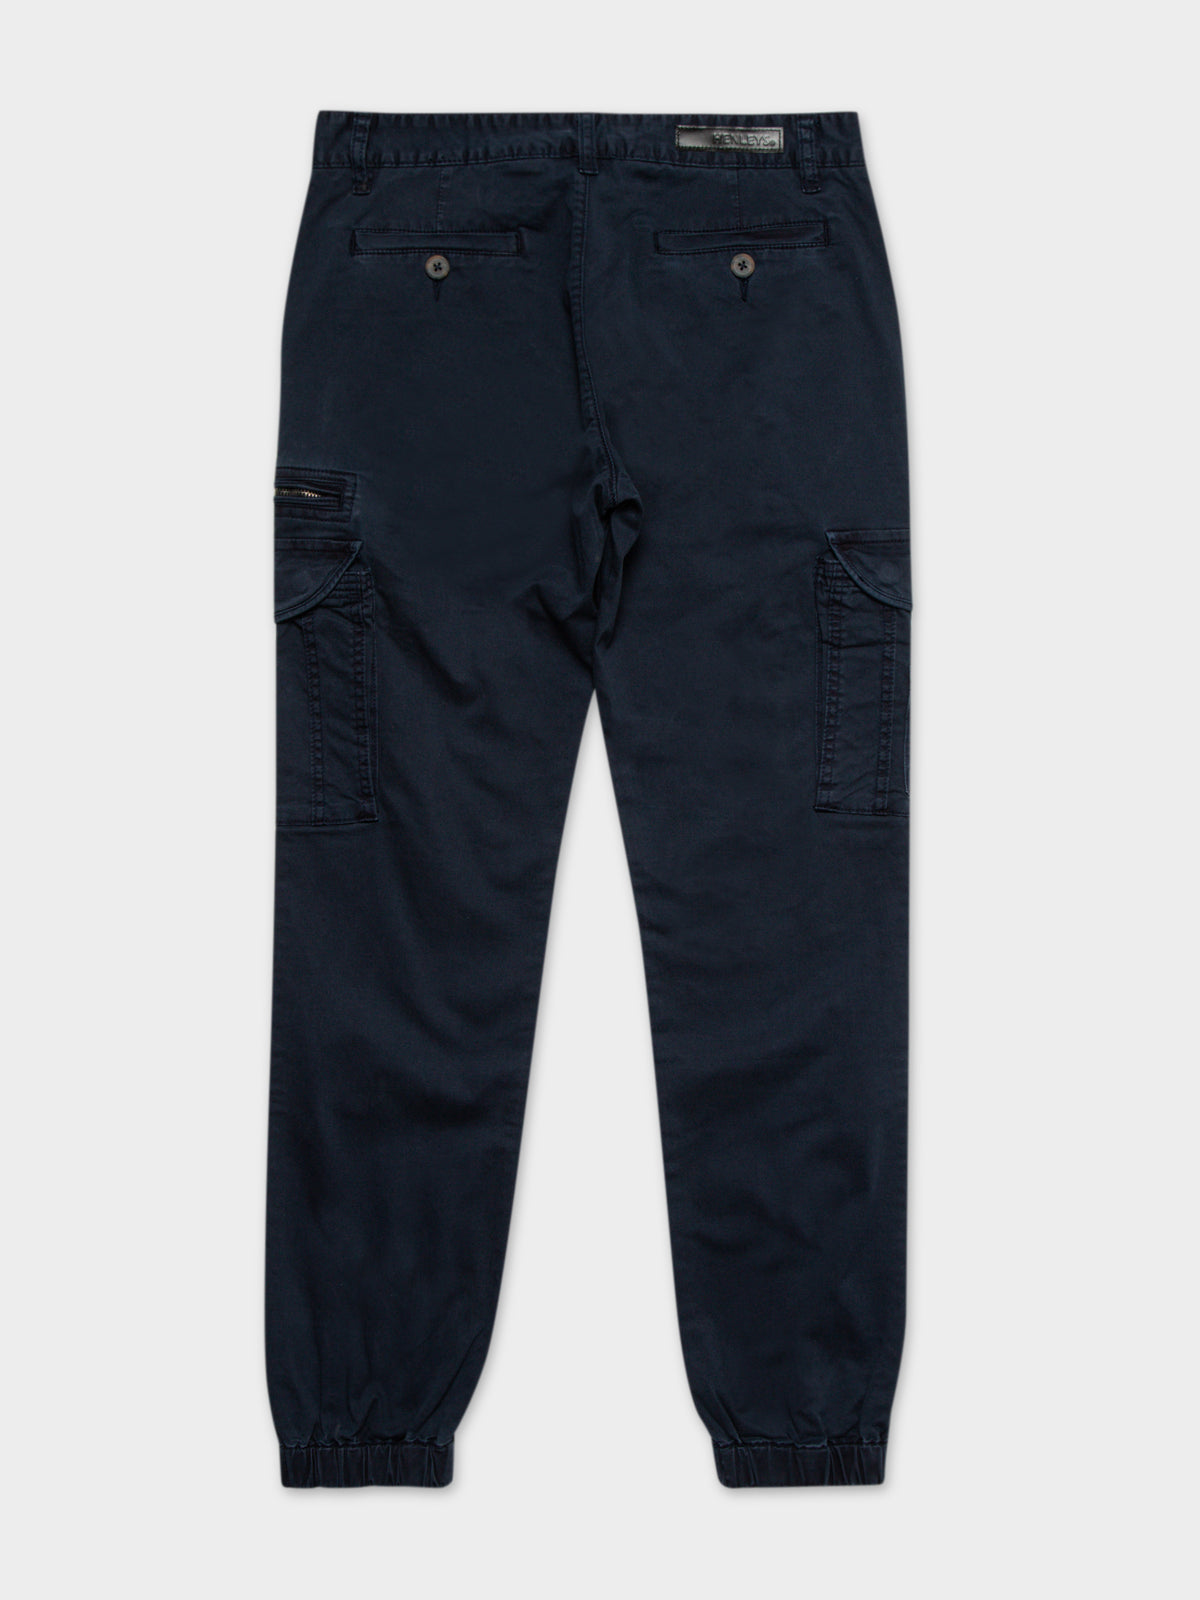 Eagle Cargo Pants in Dark Navy